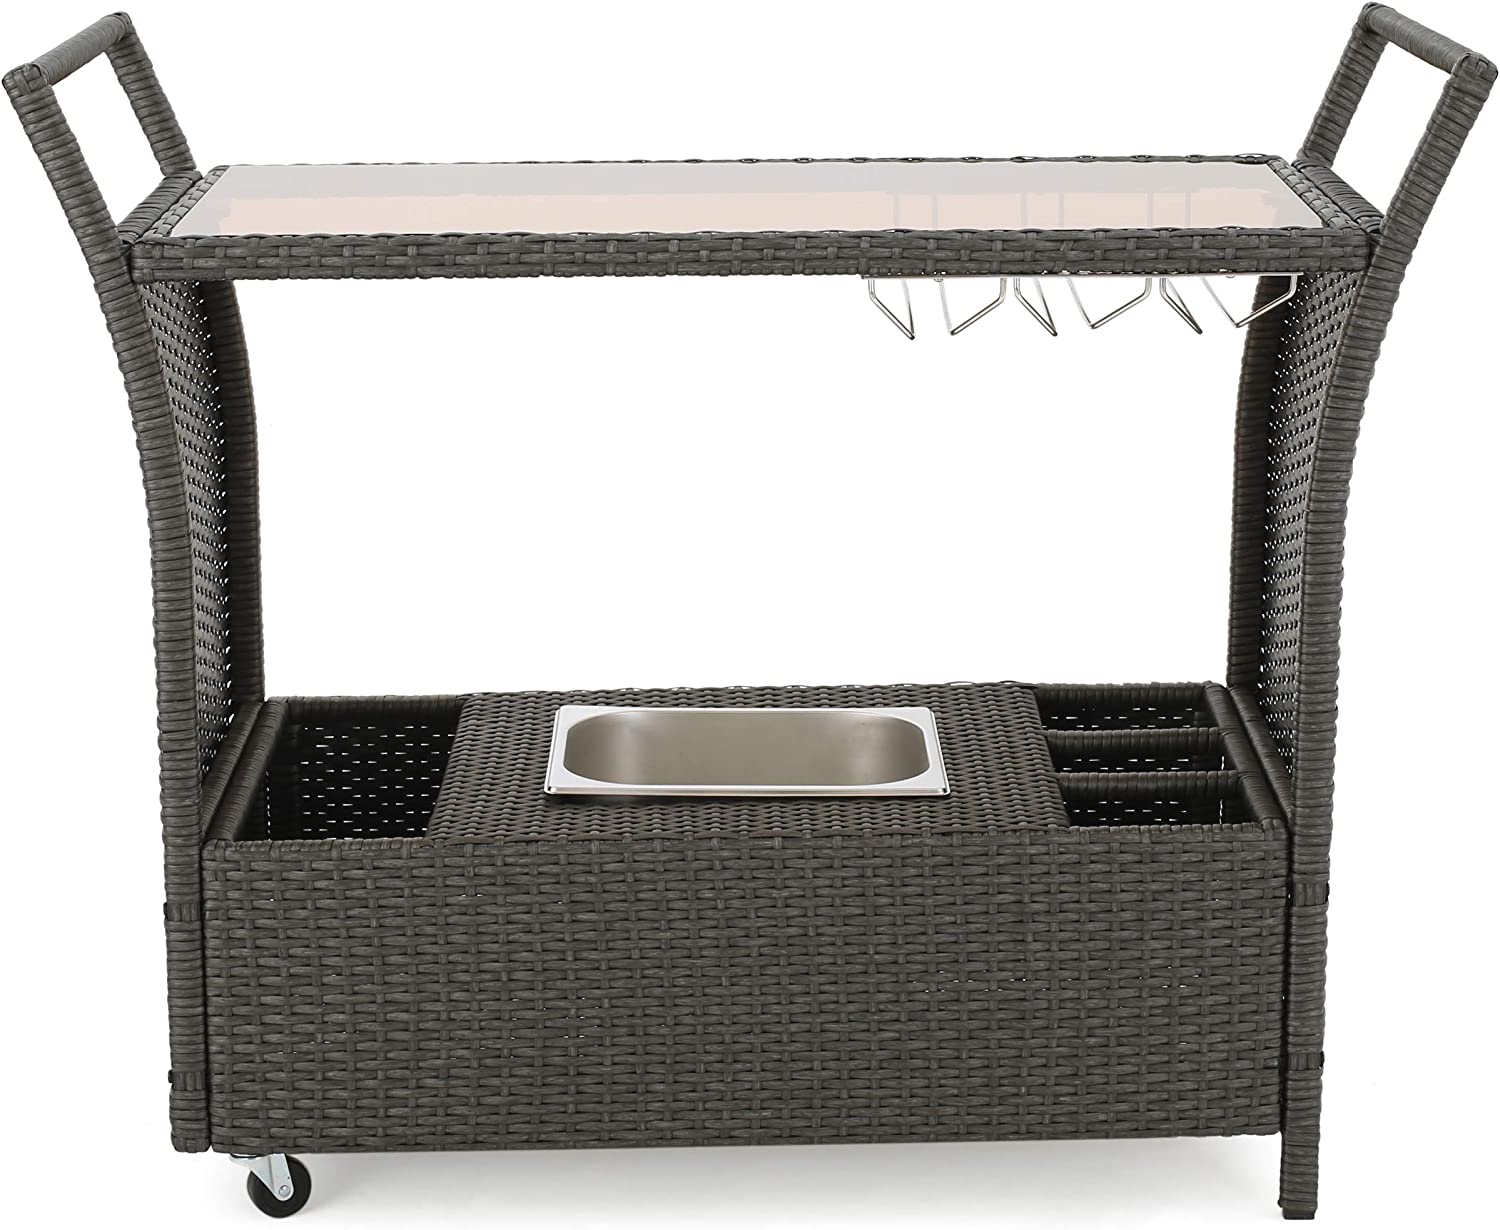 Christopher Knight Home 299521 Bahama Wicker Bar Cart, Grey